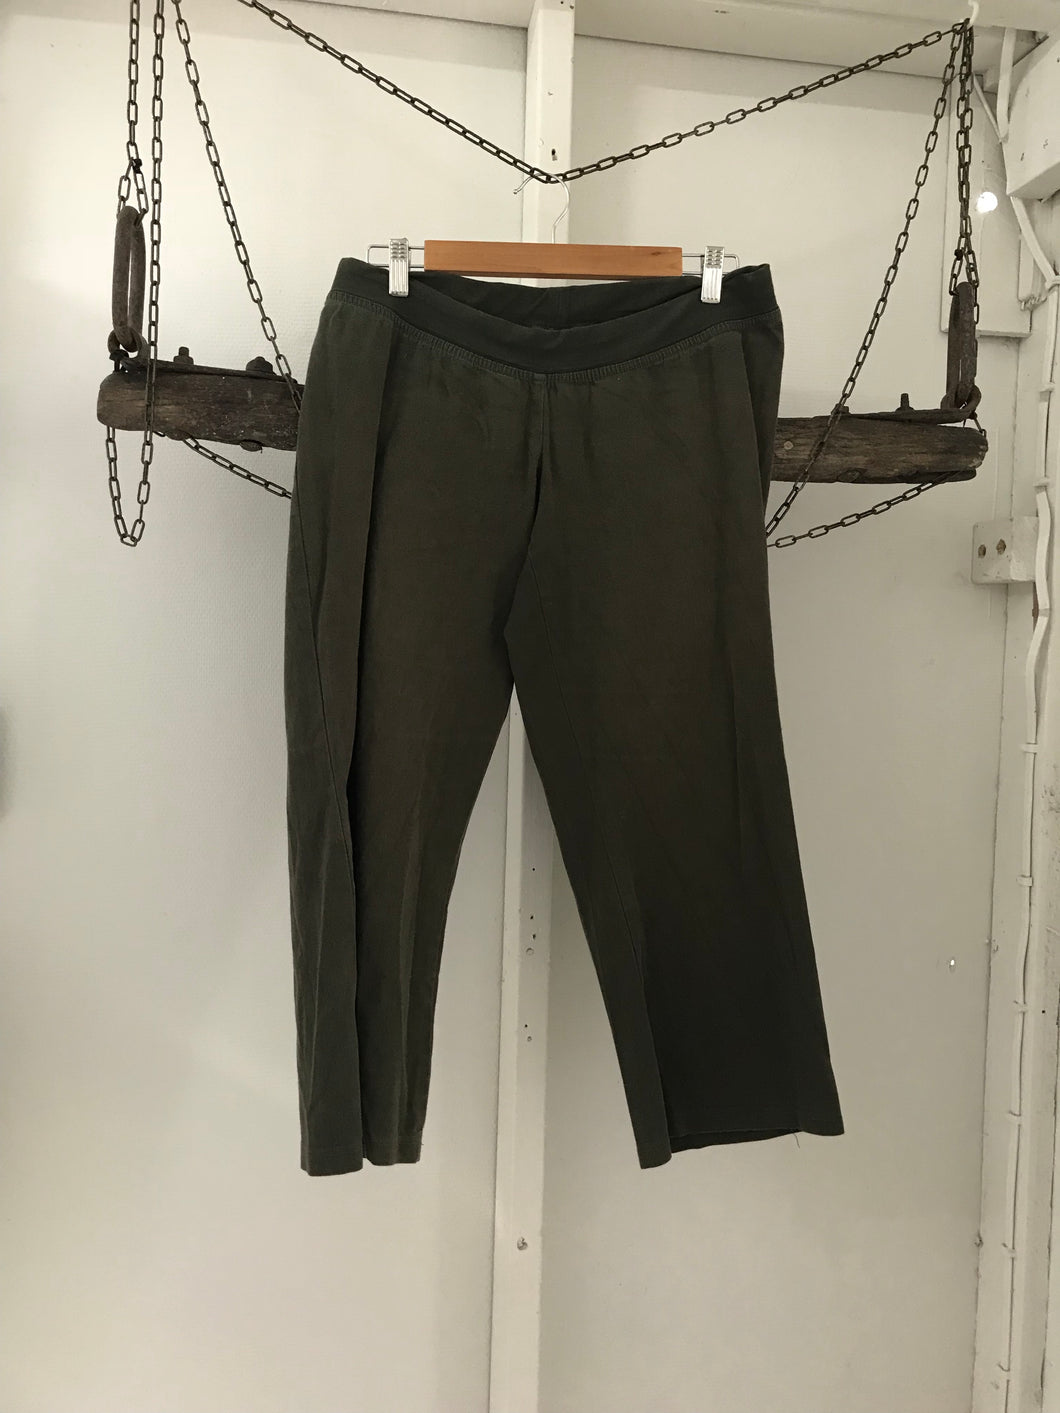 Belly Button maternity pants olive green Size Medium